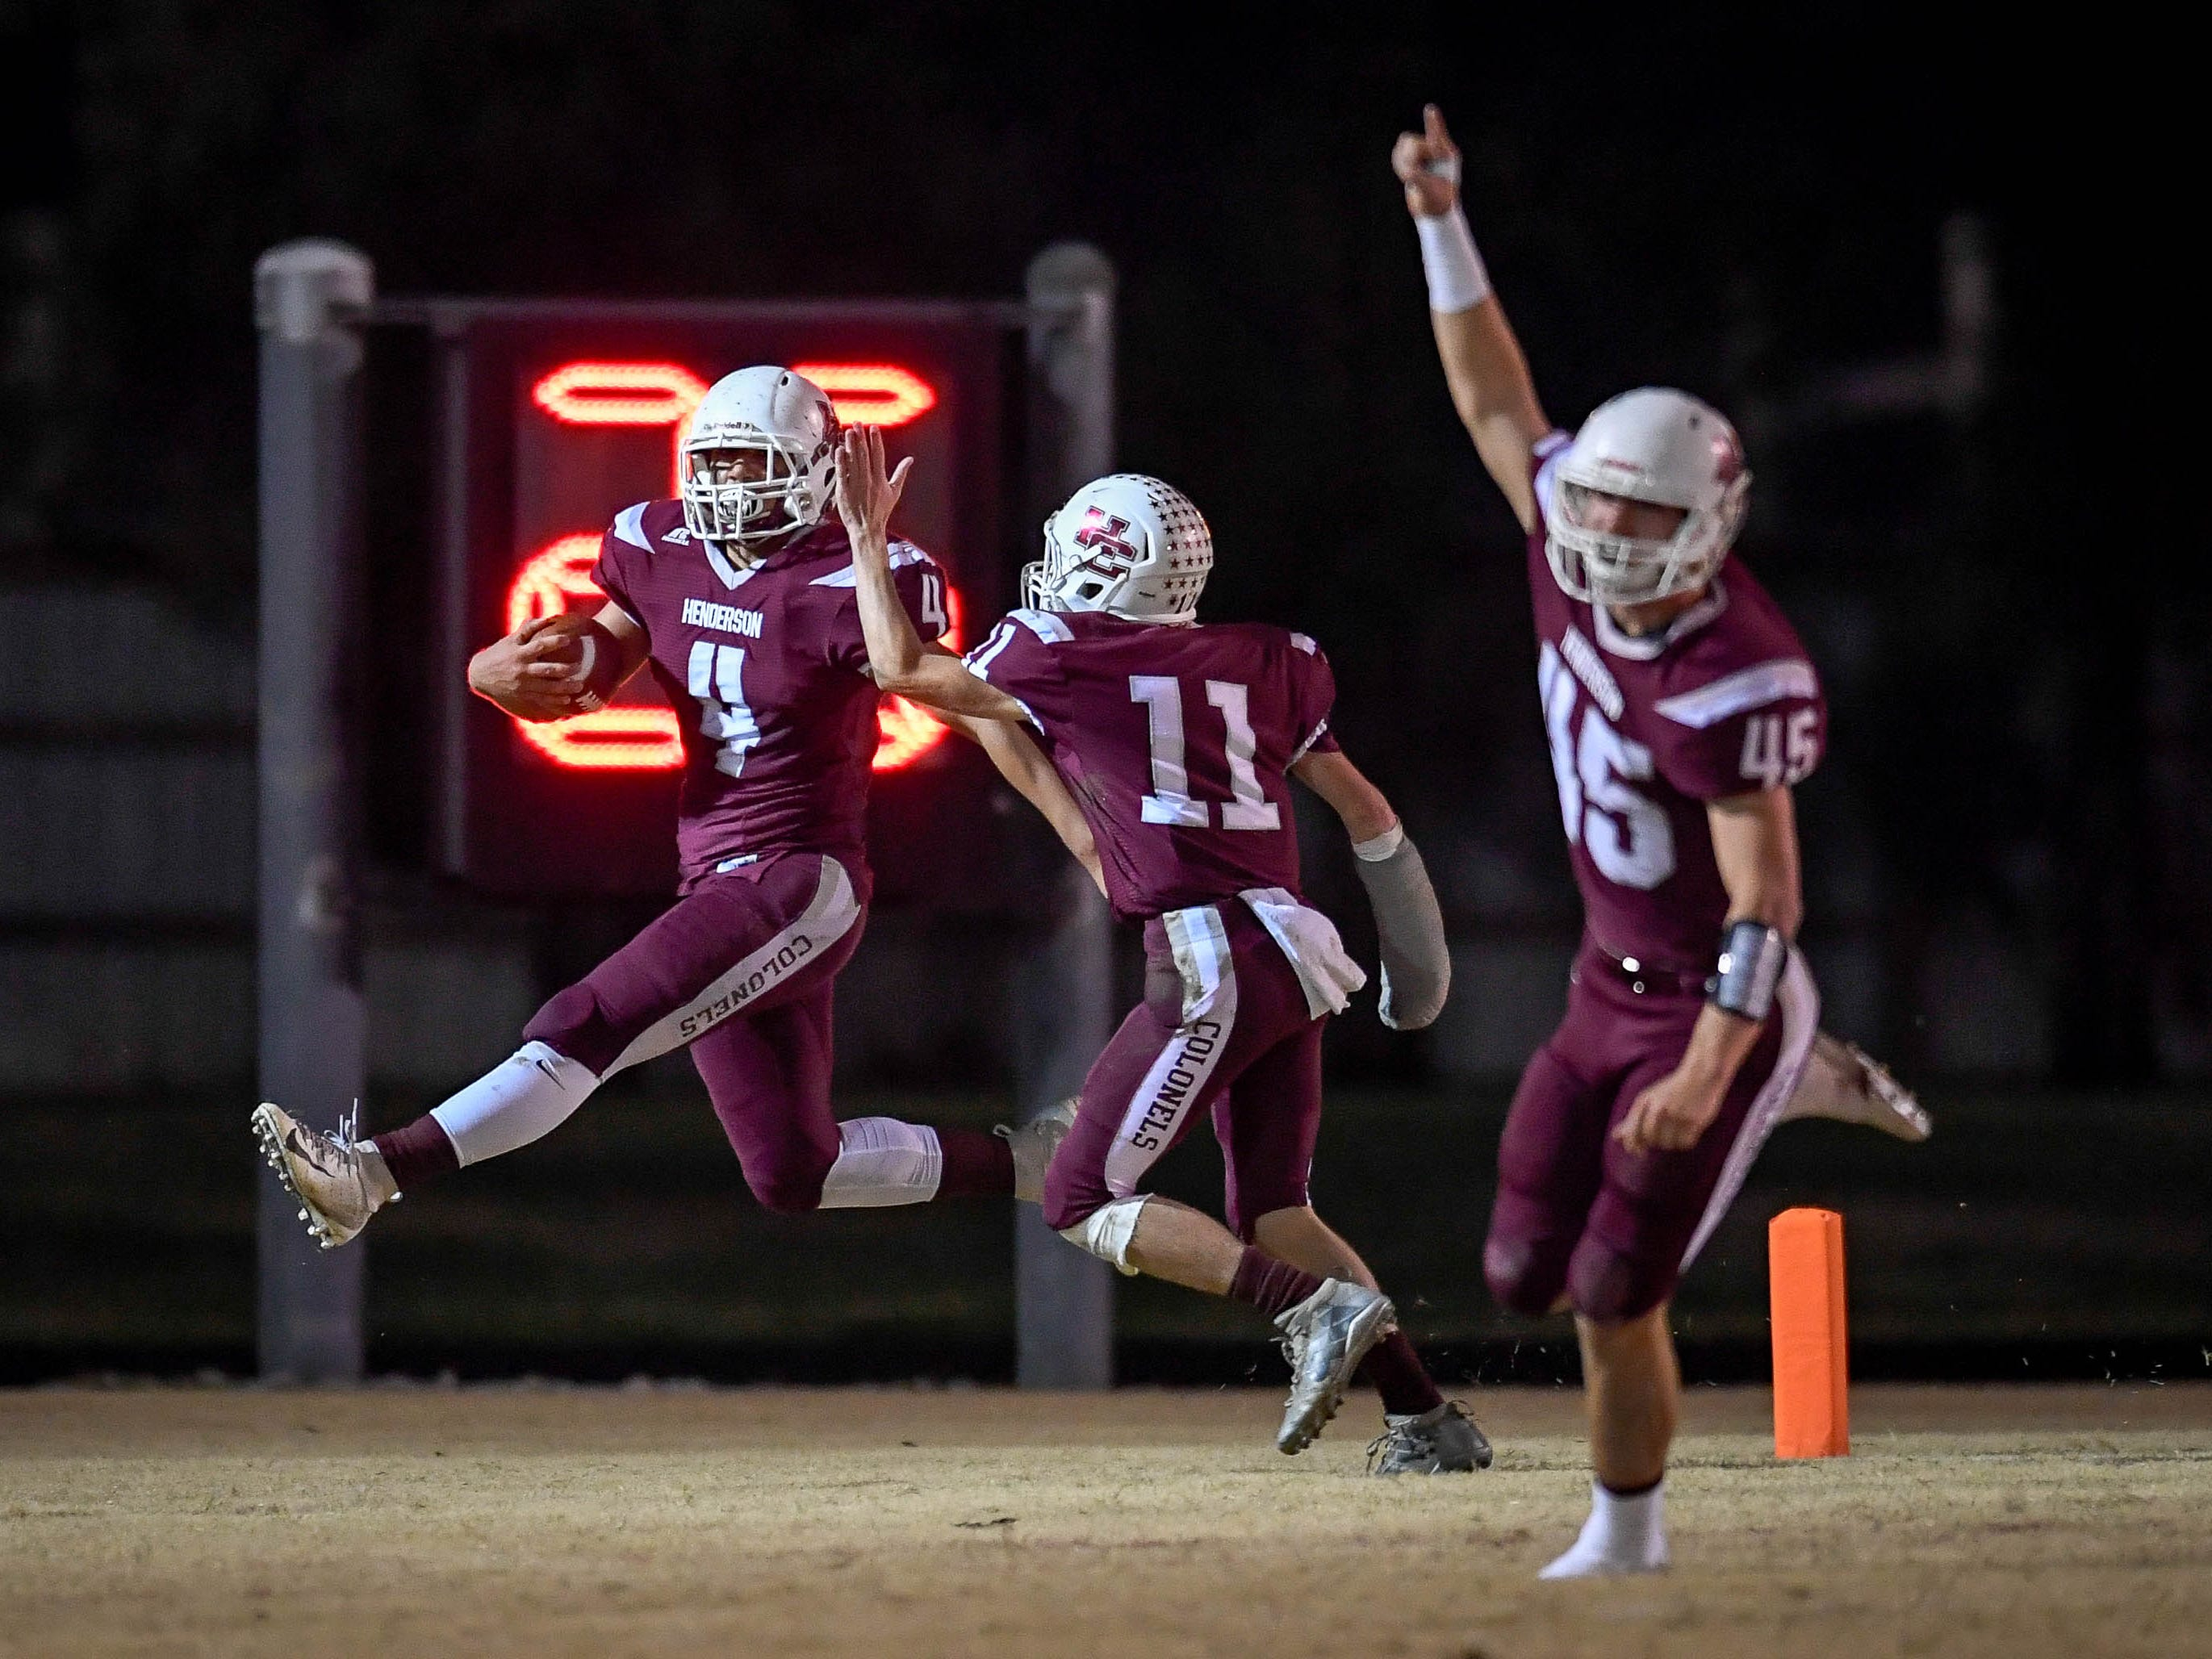 Henderson's Layton Fletcher (4), Garrett Greenwell (11)  and Ian Pitt (45) celebrate touchdown from a fumble recovery as the Henderson County Colonels play the Louisville Eastern Eagles in the first round of the 6-A playoffs at Colonel Field Friday, November 2, 2018.